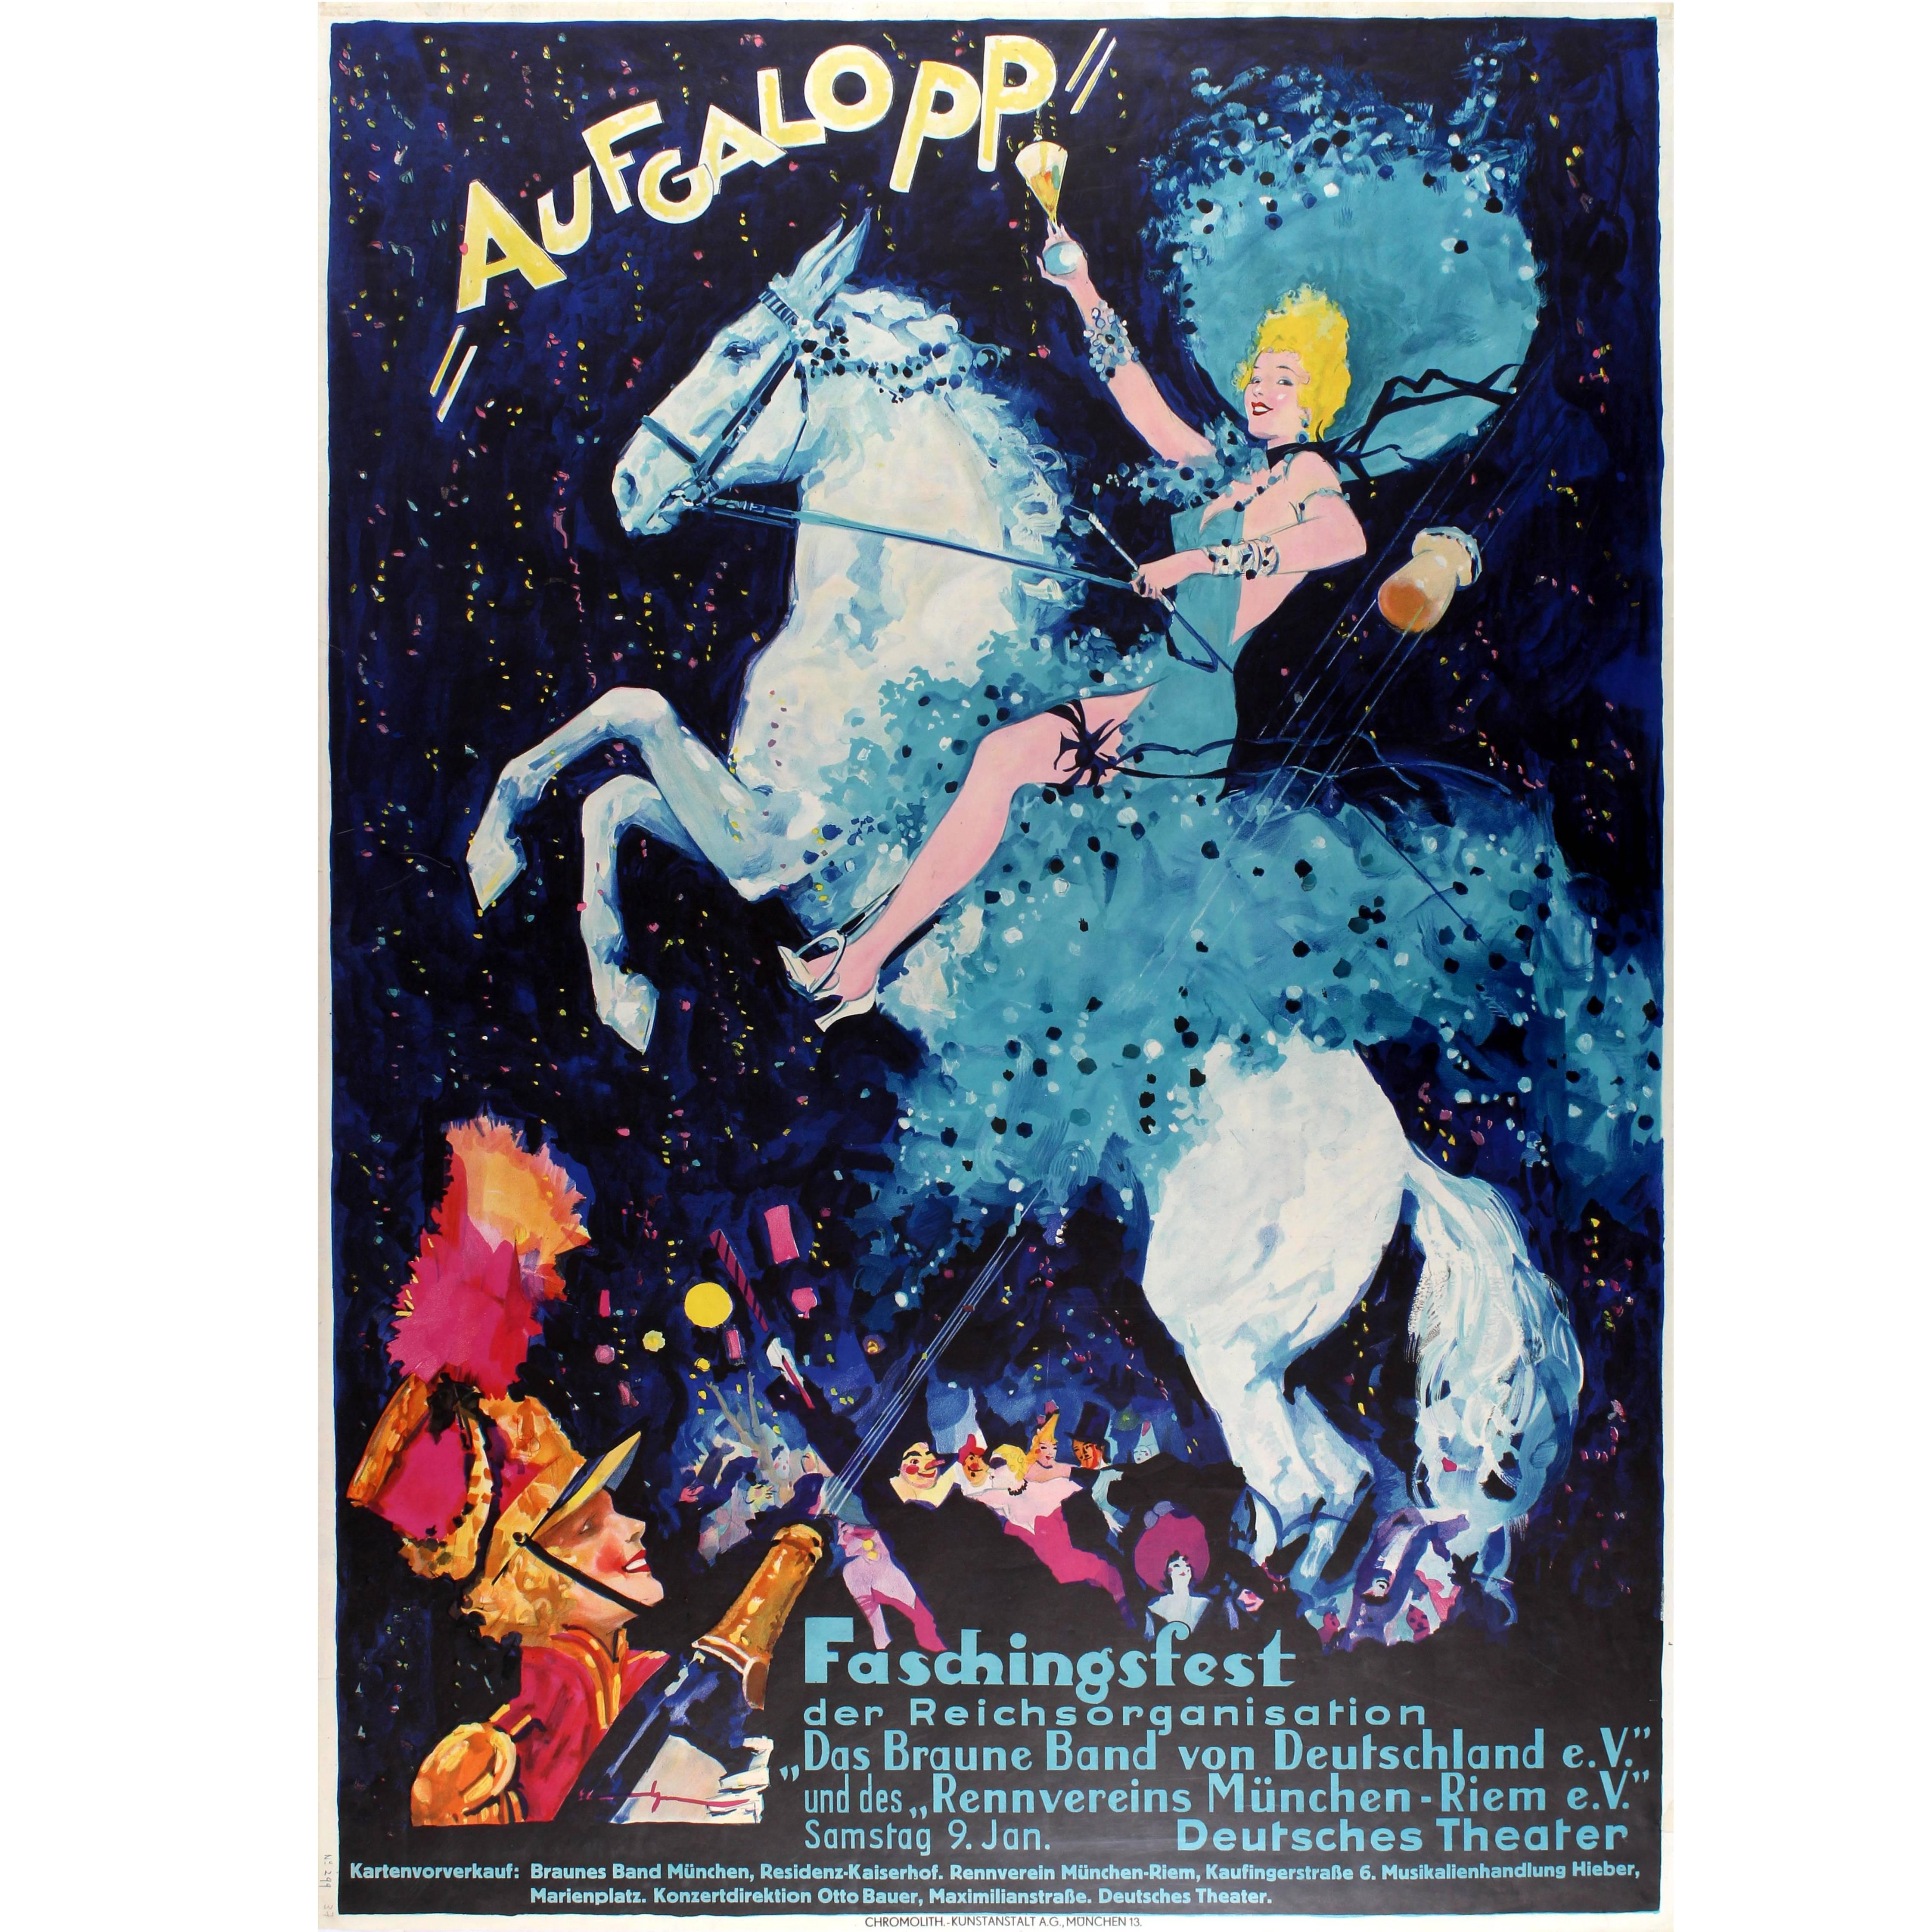 Large Original Vintage Poster for the Aufgalopp Faschingsfest Carnival in Munich